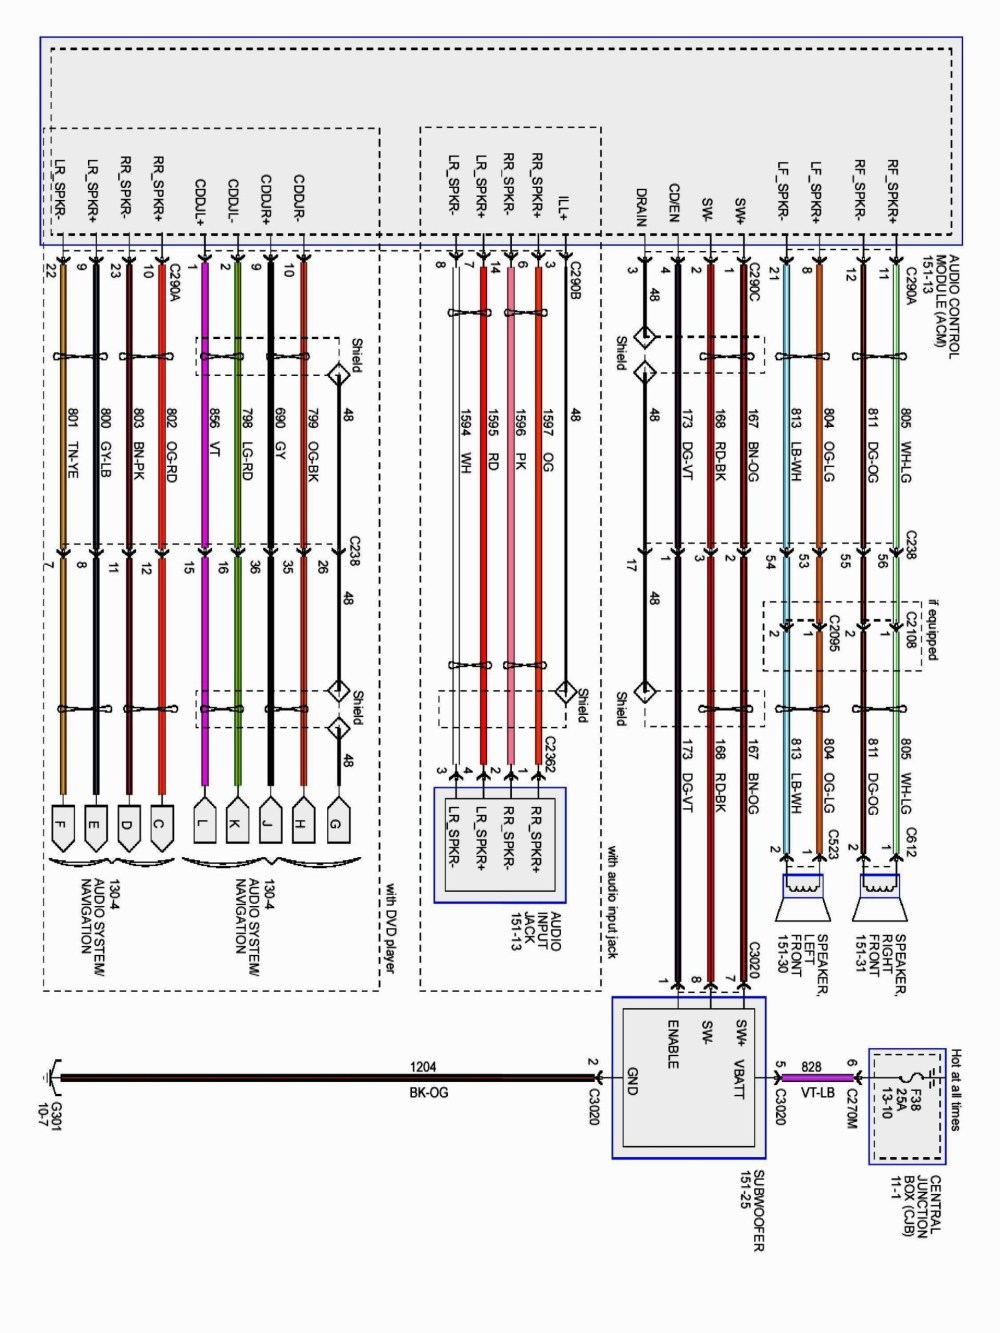 medium resolution of clarion vz401 wiring diagram 2012 wiring diagram meta clarion vz401 wiring diagram 2012